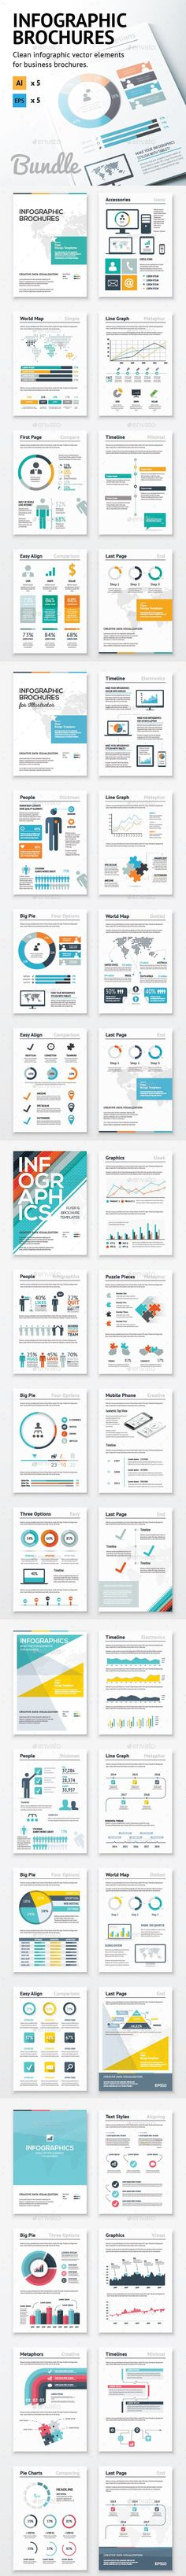 Infographic Brochure Elements Bundle Template #design Download: http://graphicriver.net/item/infographic-brochure-elements-bundle/10543927?ref=ksioks